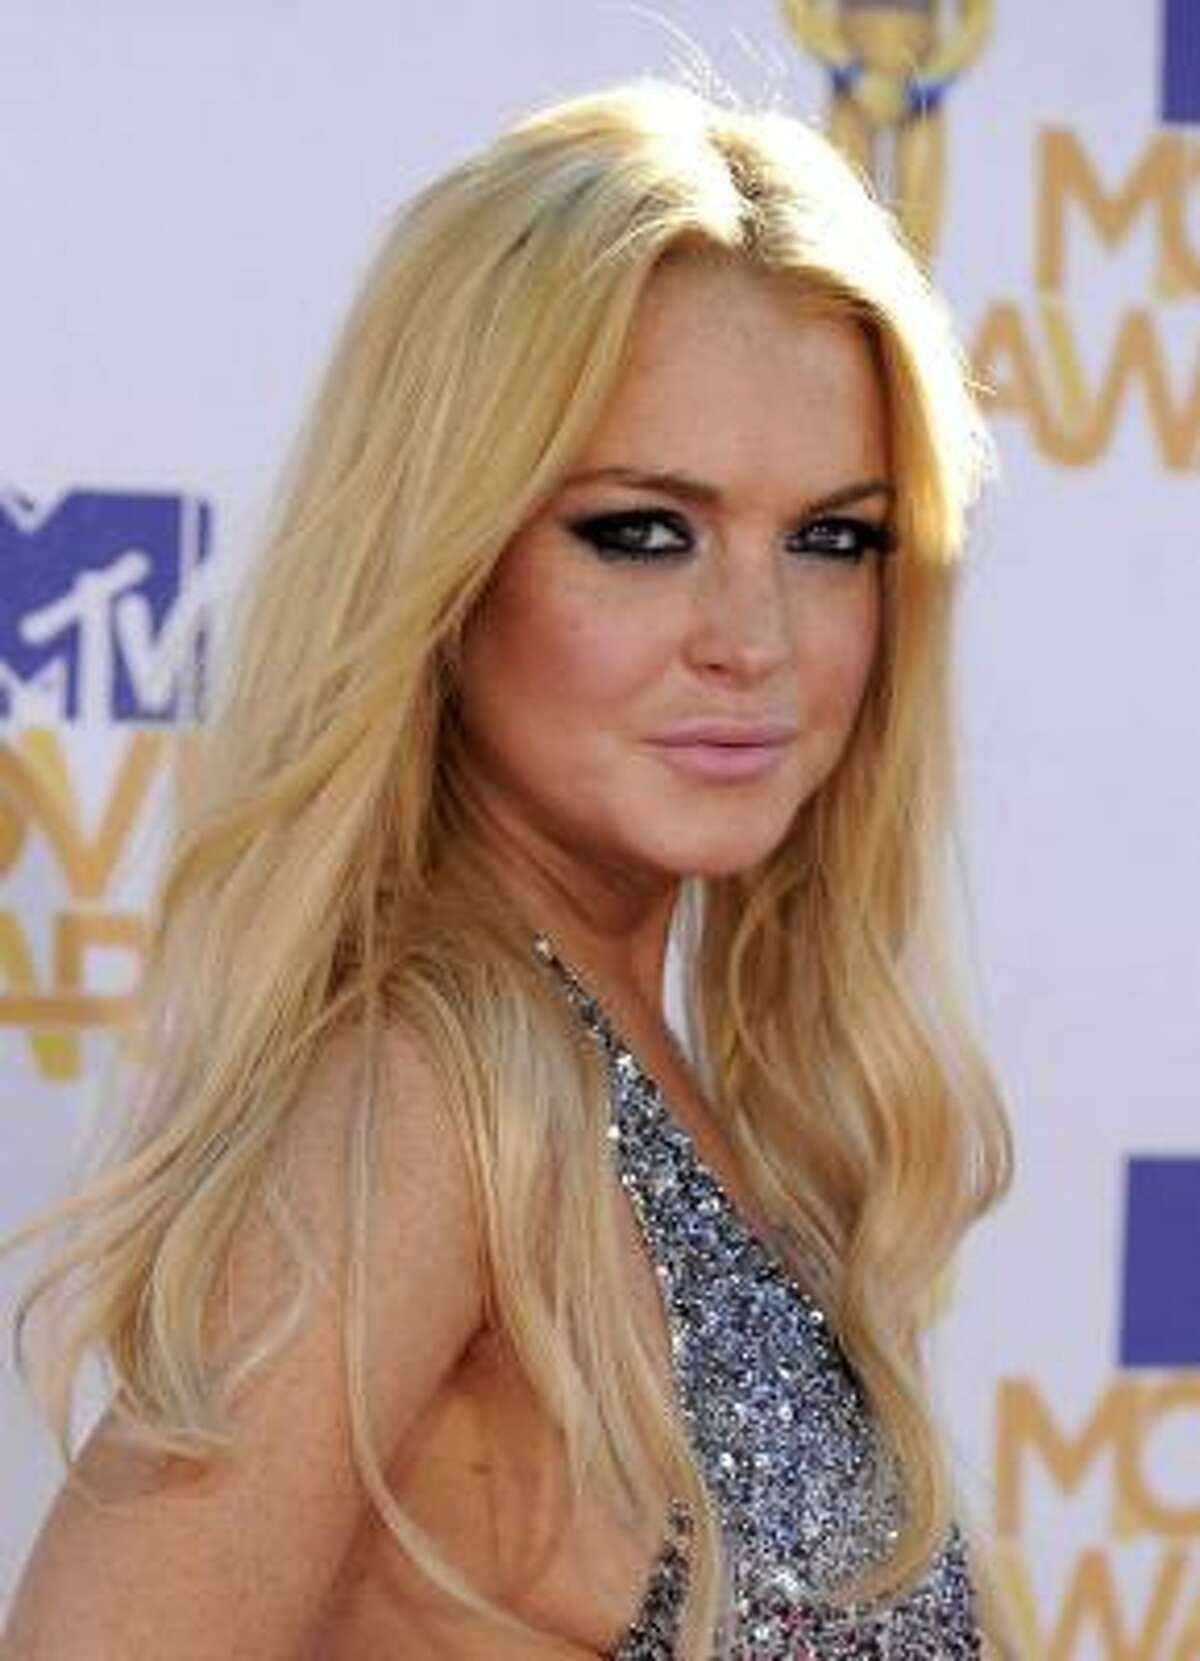 You win some, you lose some. Lindsay Lohan withdrew her support for Obama, and now backs Mitt Romney because she trusts him do a better job with the economy. Hmmm, is that a good thing?